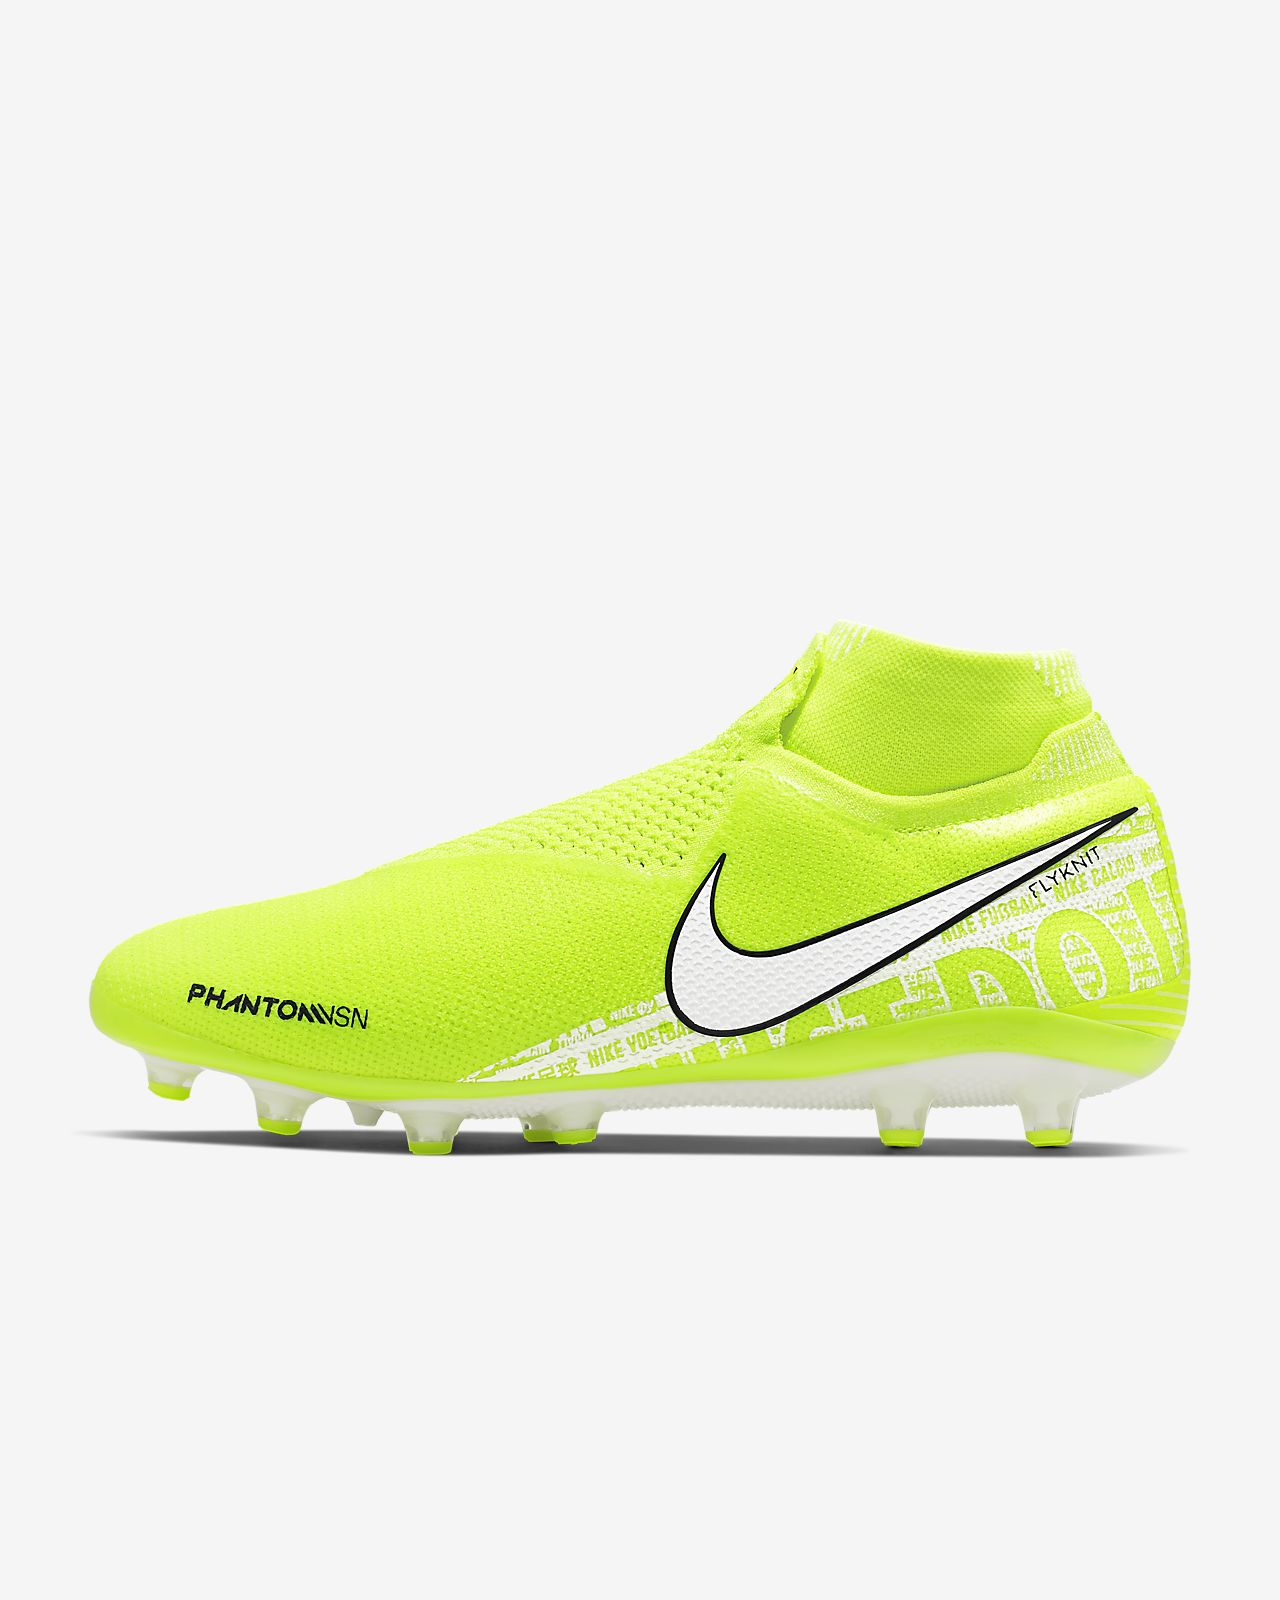 Chaussure de football à crampons pour terrain synthétique Nike Phantom Vision Elite Dynamic Fit